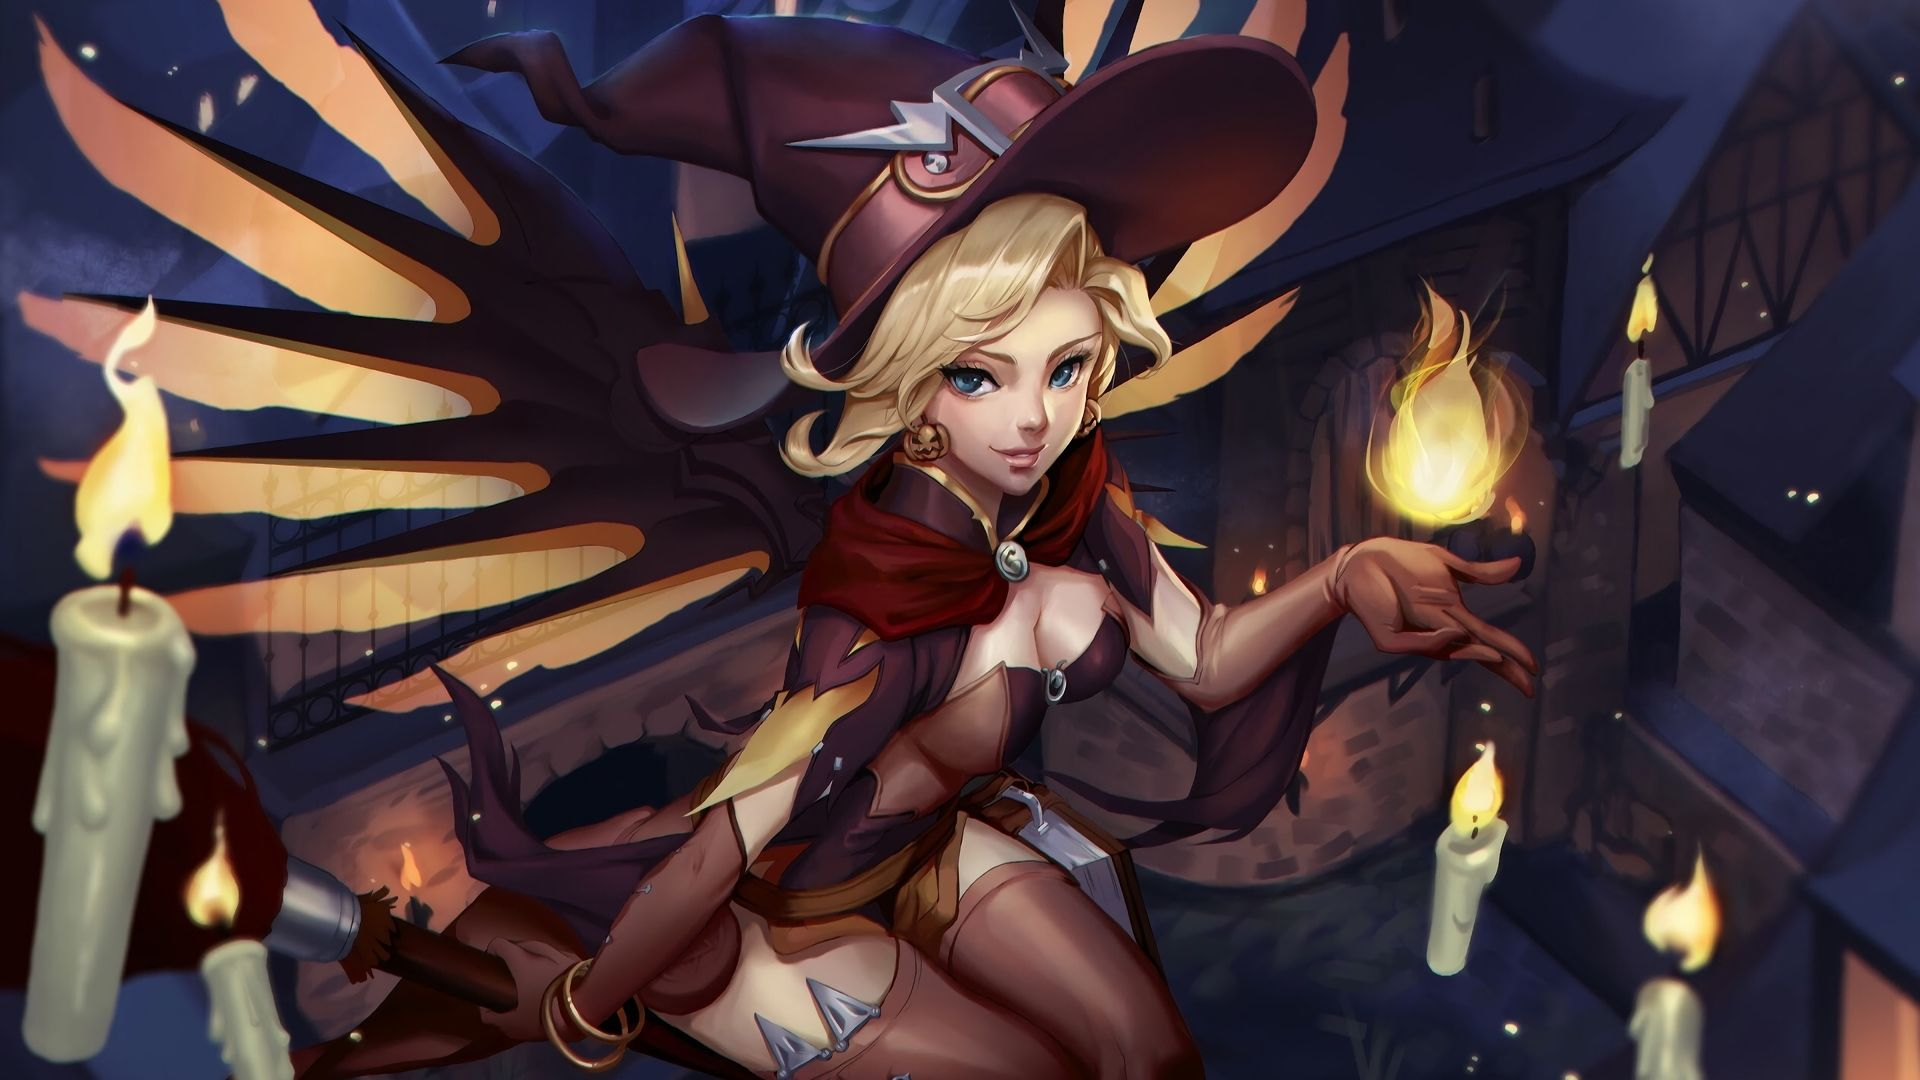 1920x1080 HD Wallpaper of Witch Mercy Overwatch Video Game.